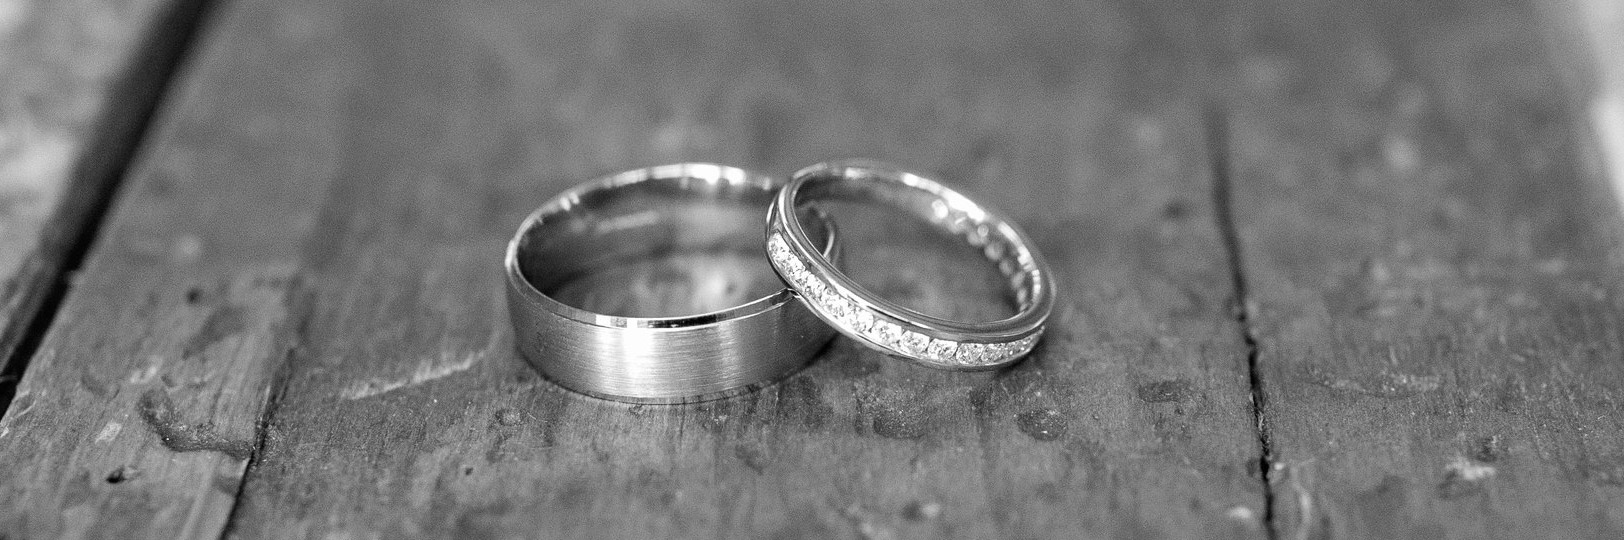 Gray scale image of couples wedding rings